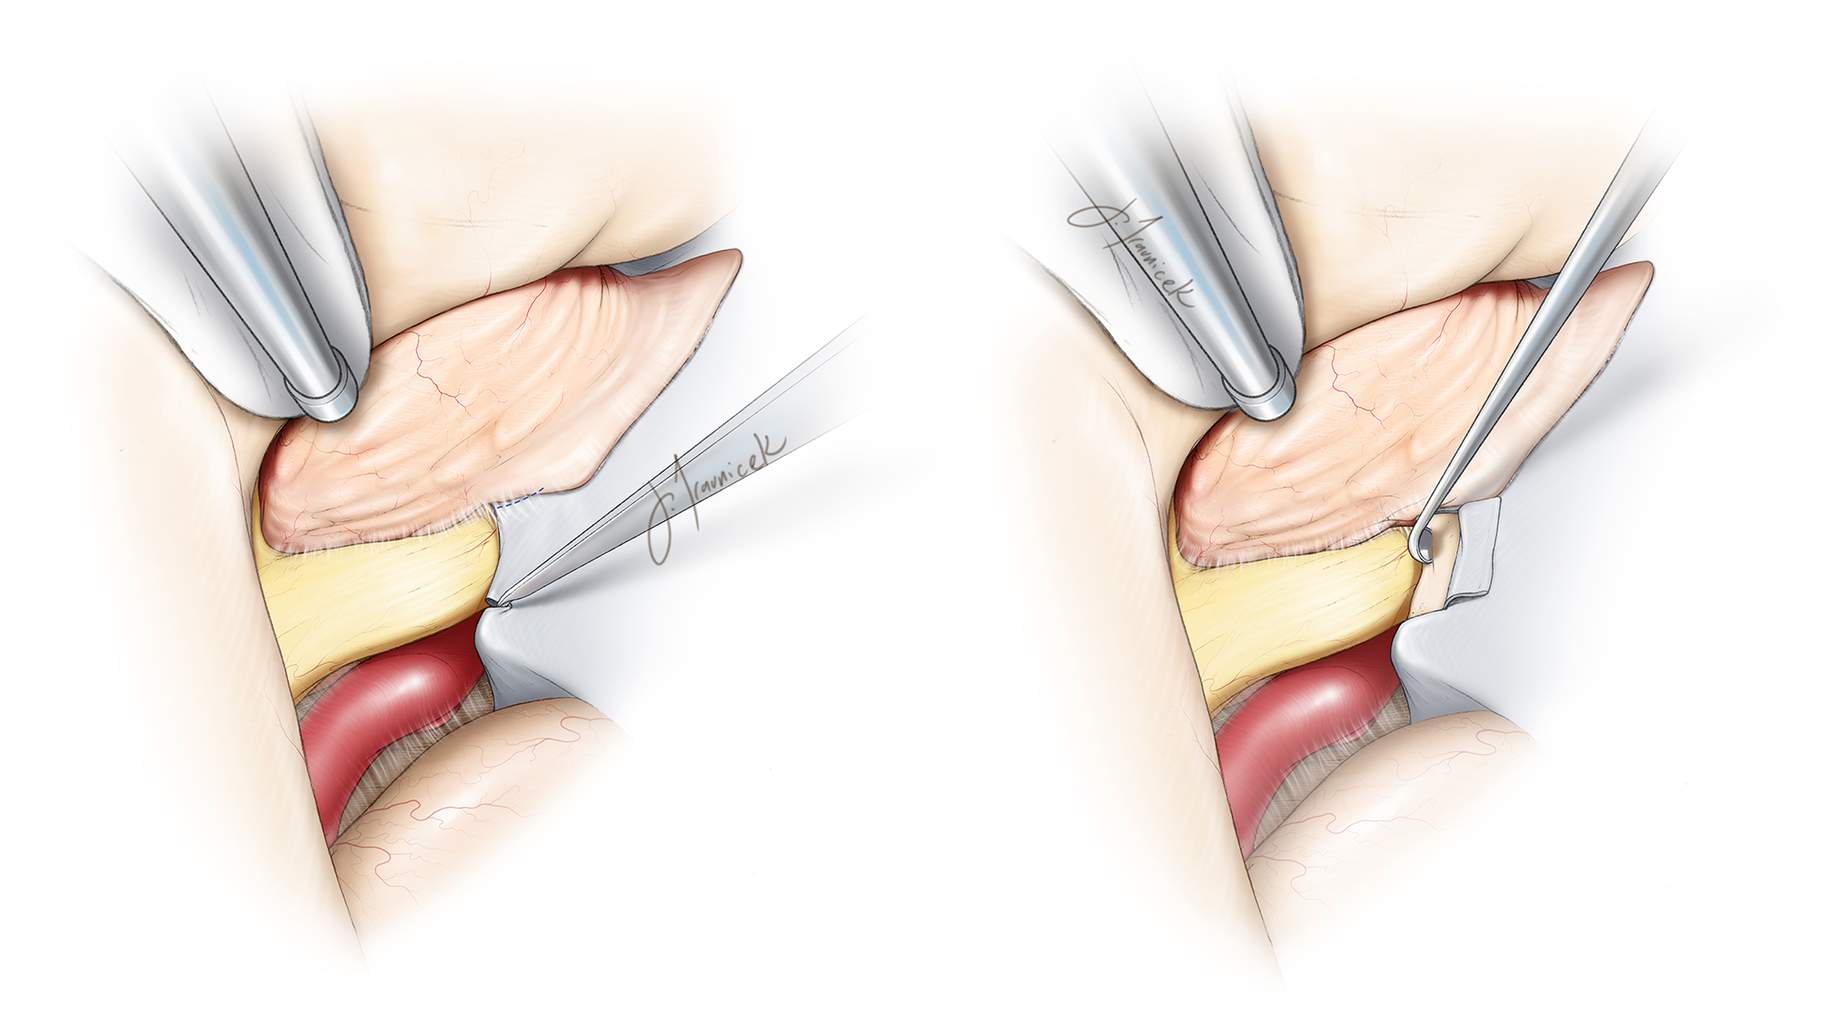 Figure 7: Since an extradural clinoidectomy was completed during the earlier stages of the operation, the falciform ligament can be readily cut (left), leading to generous decompression of the ipsilateral optic nerve. Alternatively, an  intradural clinoidectomy/osteotomy  will allow unroofing of the nerve (right). Diamond burrs and angled currettes are used through copious irrigation to prevent thermal injury to the optic nerve. Aggressive bipolar coagulation of the tumor around the nerve is avoided.